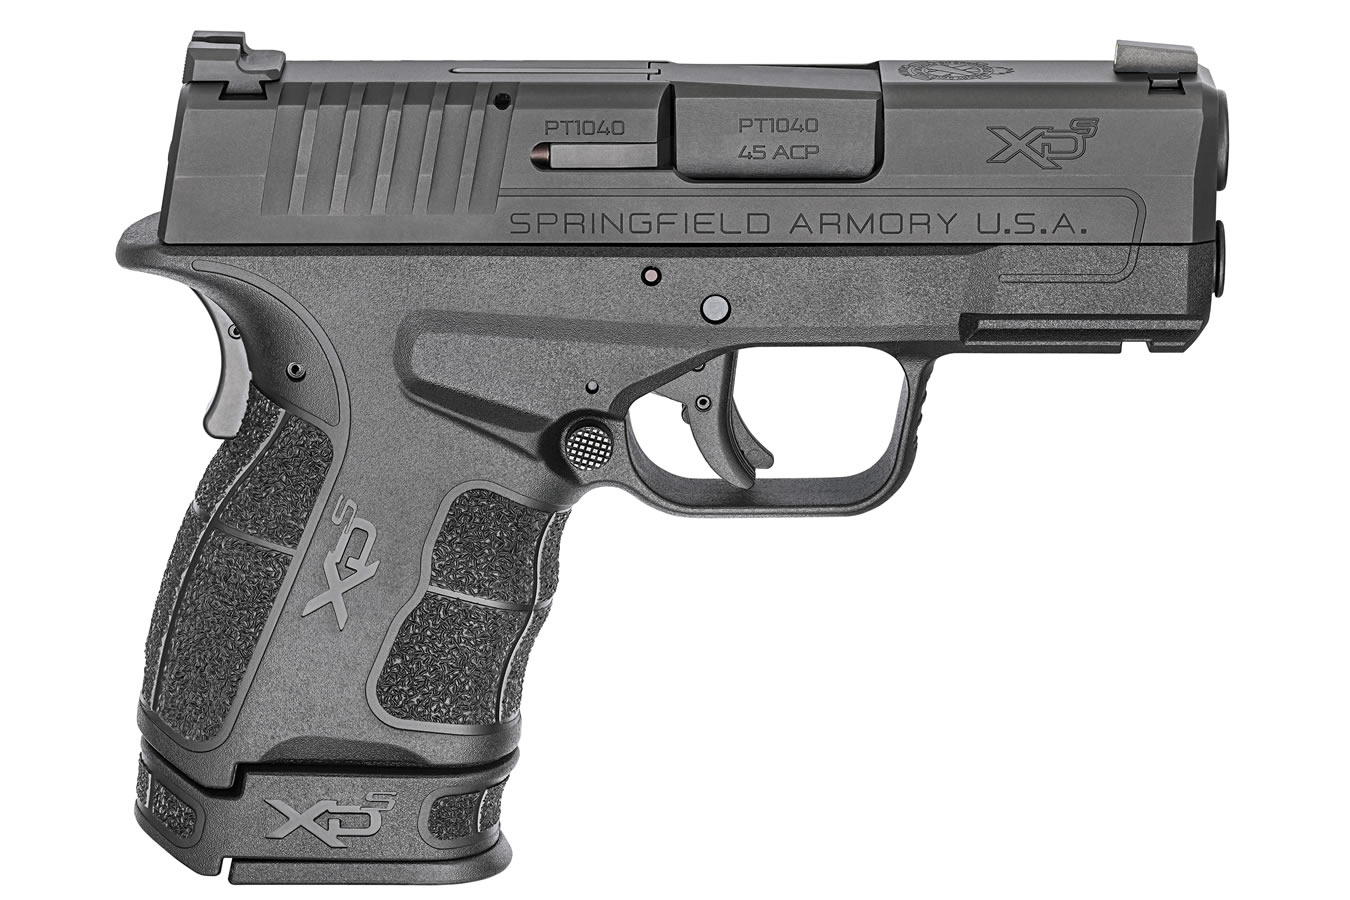 XDS MOD.2 45 ACP W/ NIGHT SIGHT (GEAR UP PACKAGE)